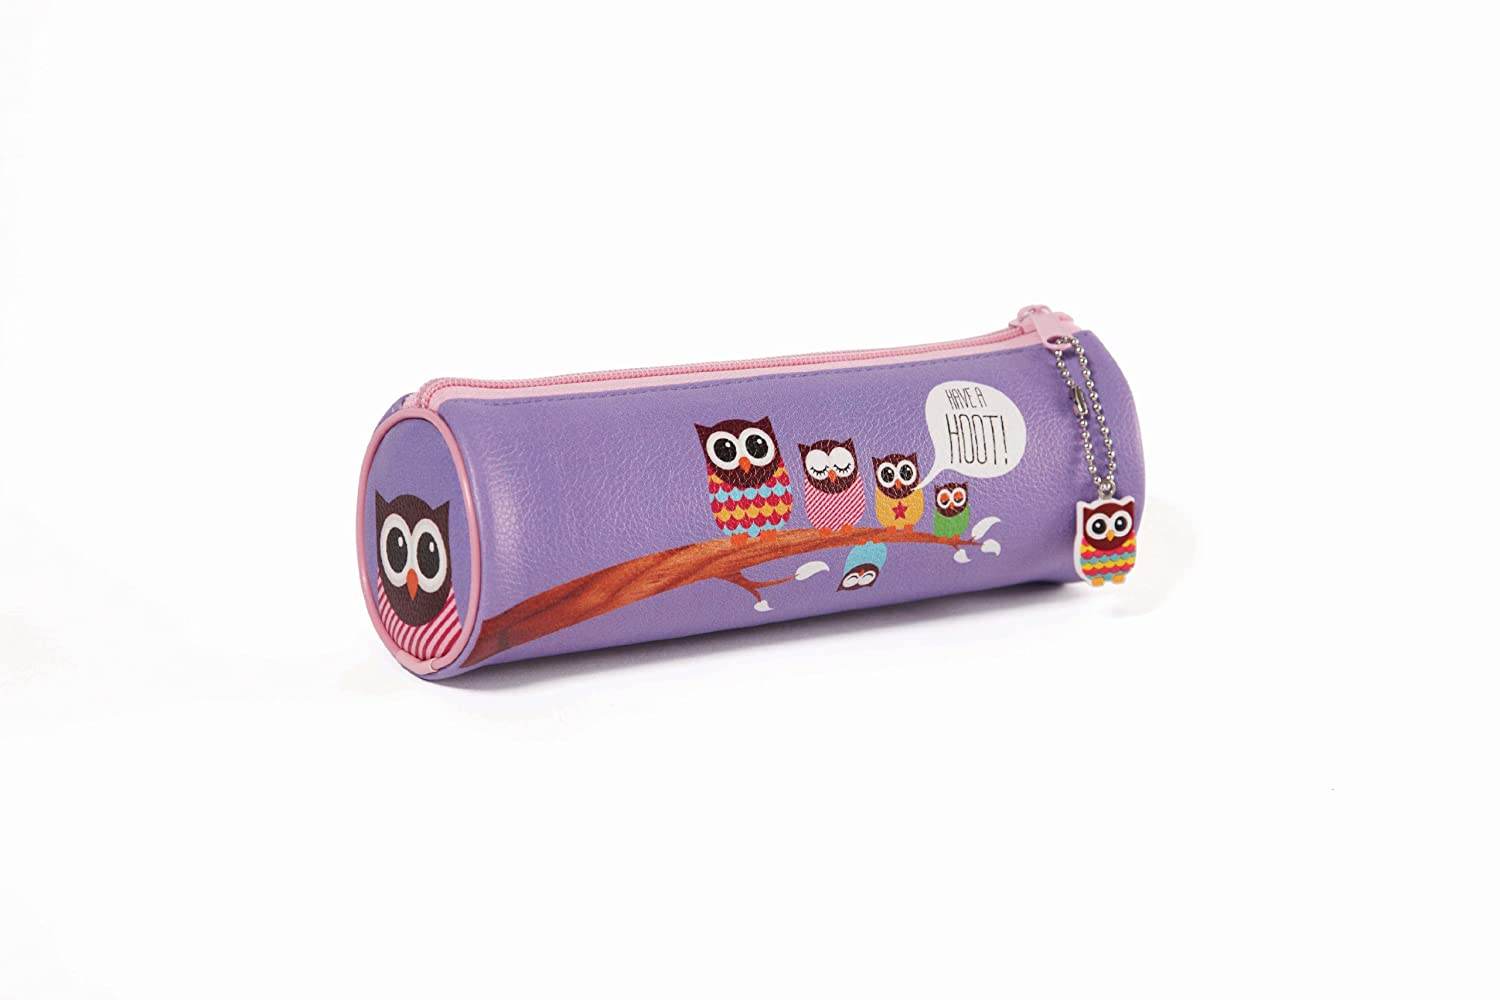 GIVE A HOOT Barrel PVC Pencil Case with Charm